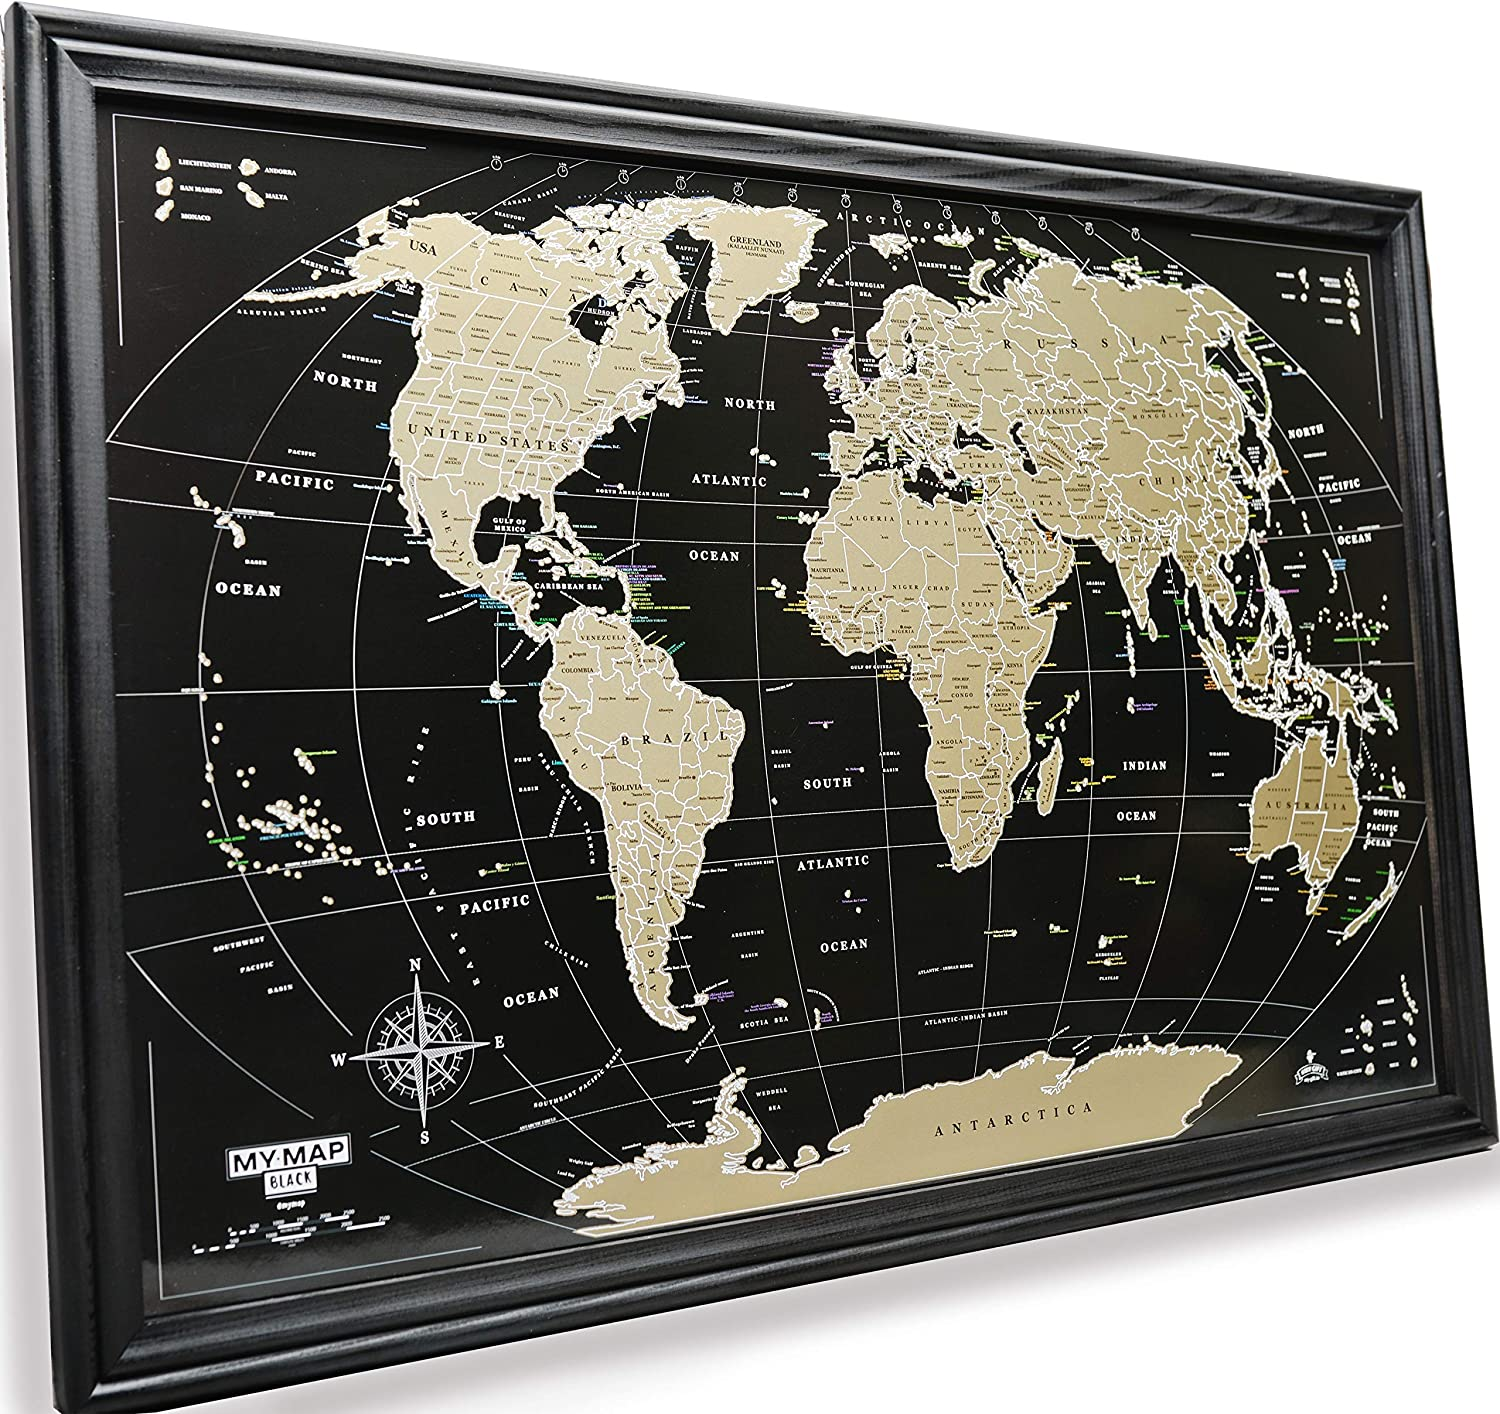 MyMap Framed World Scratch Off Map 16x24 inch Wood Black Frame Scratch World Push pin Map Travel map Gift for Travelers Deluxe World map